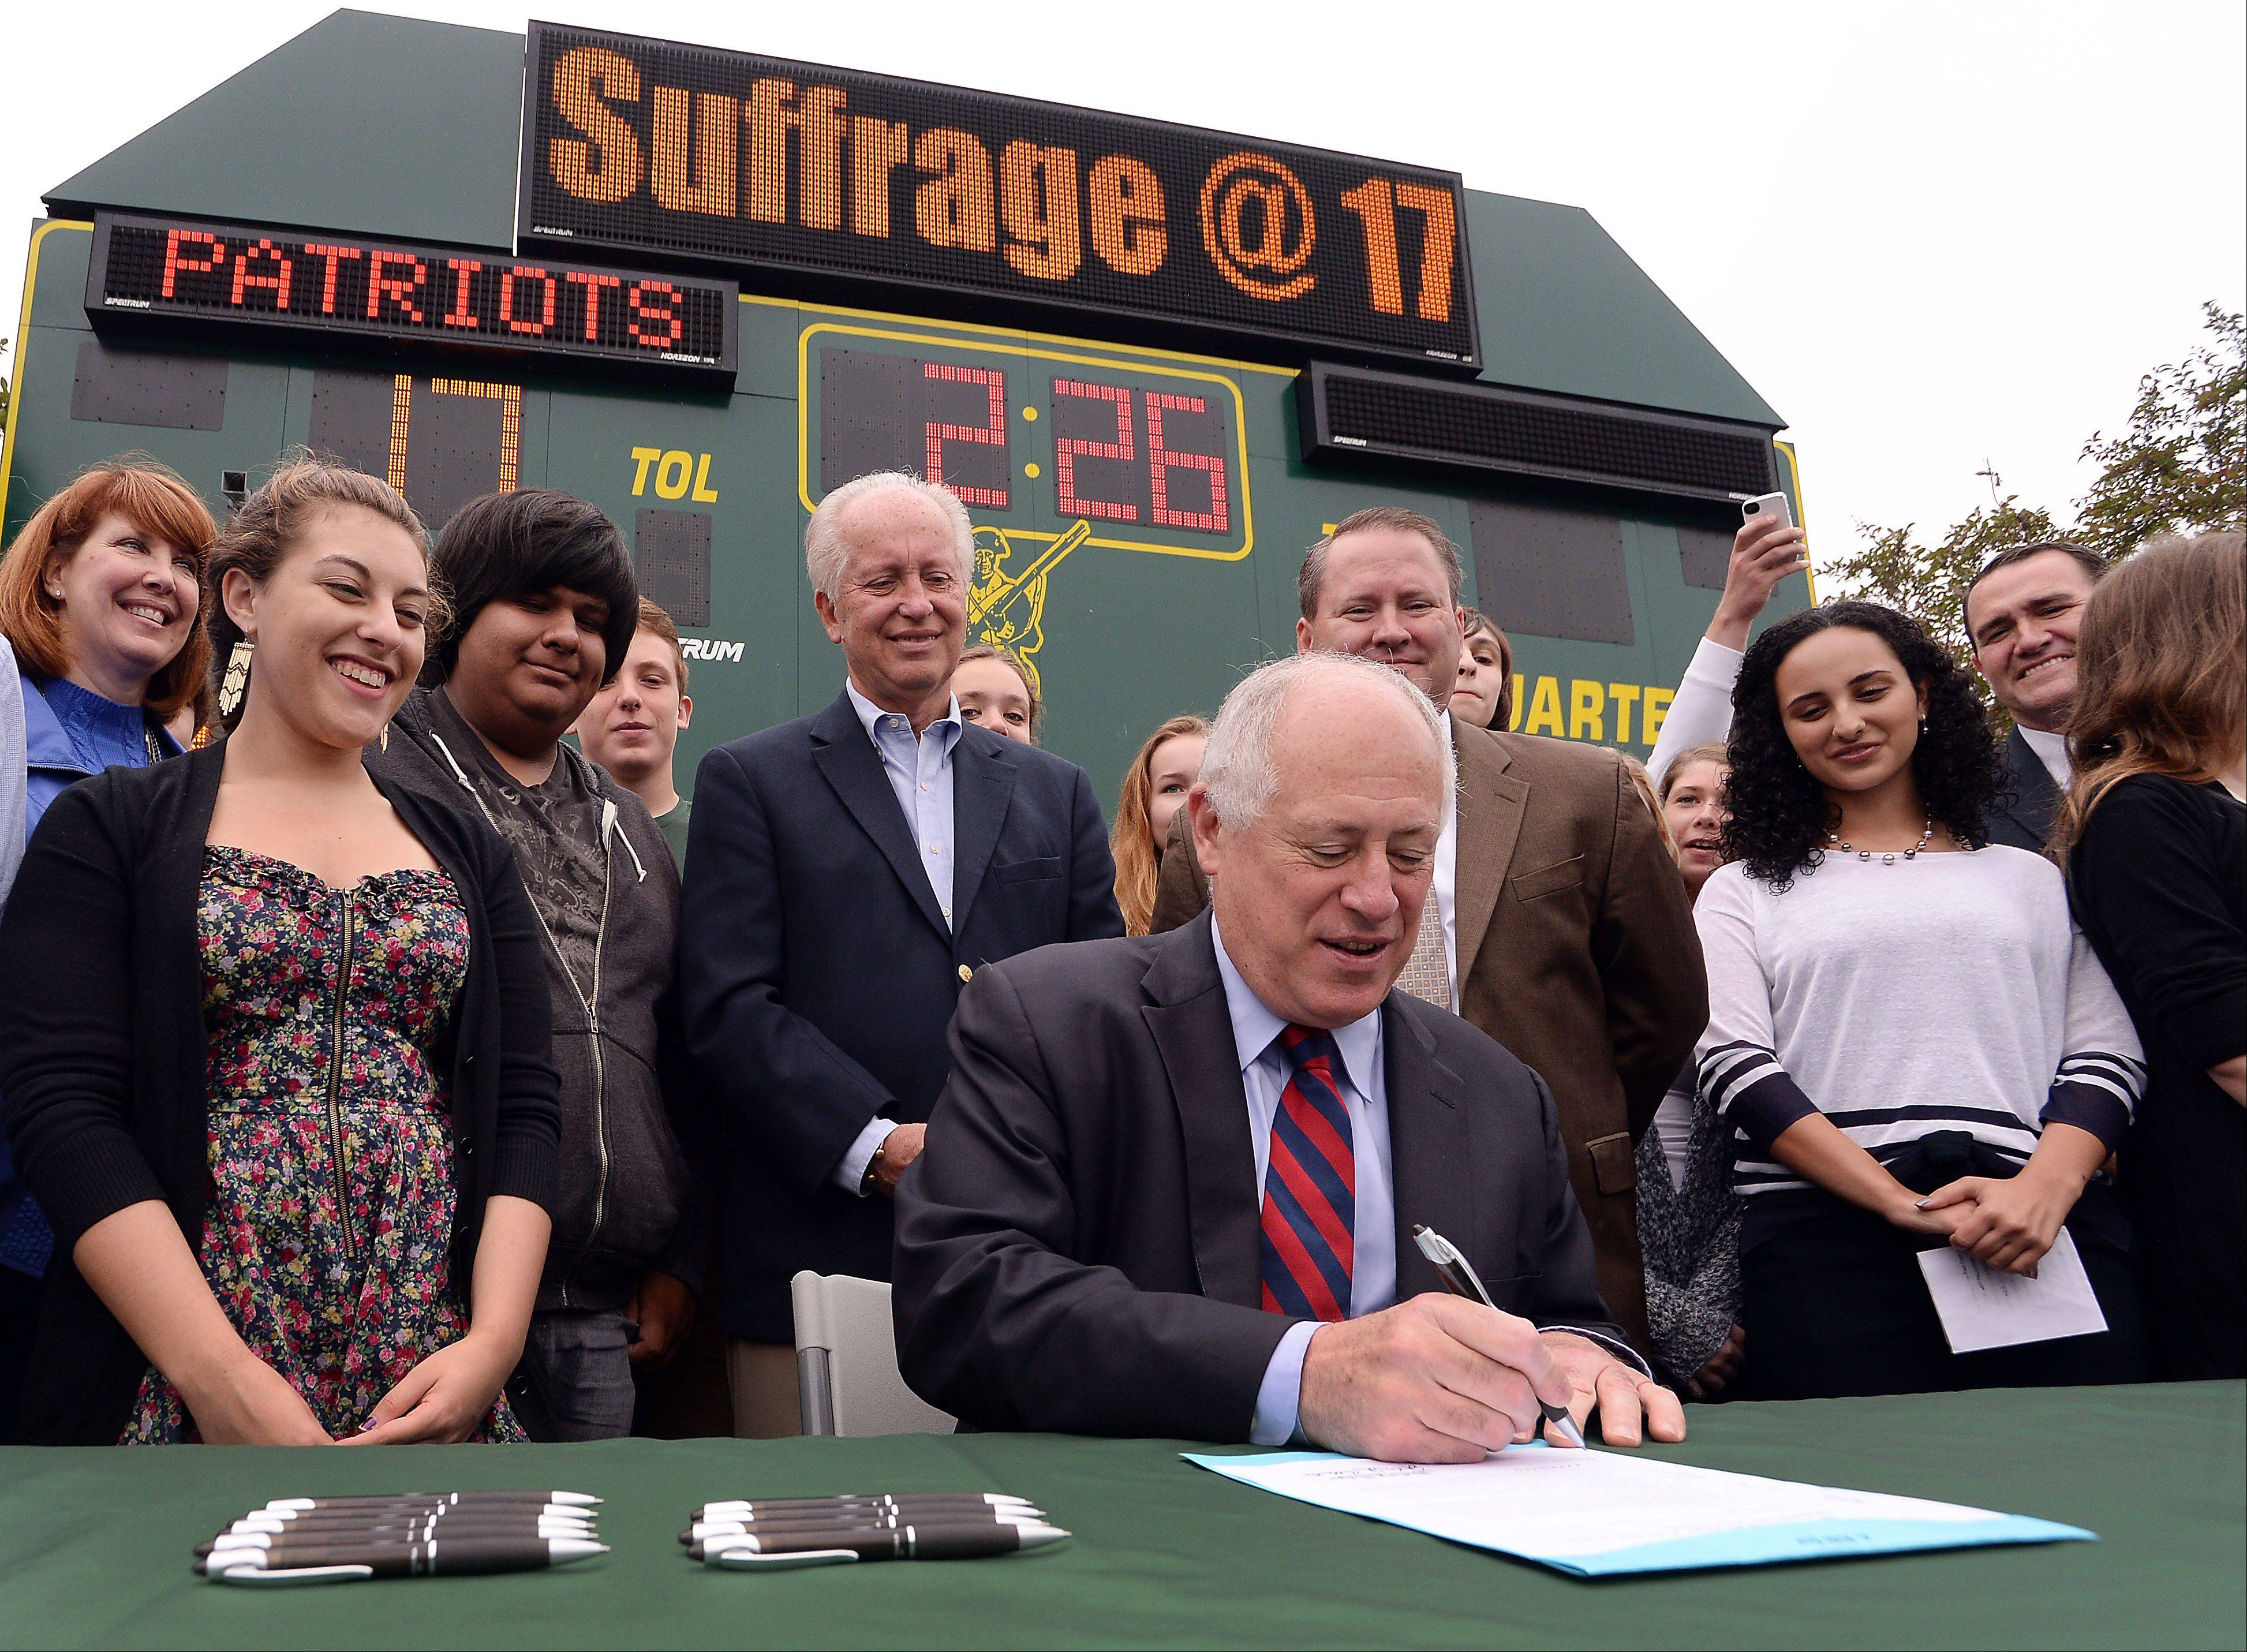 Gov. Pat Quinn signs a bill into law expanding voting rights to some 17-year-olds. Wednesday's bill signing was at Stevenson High School in Lincolnshire.